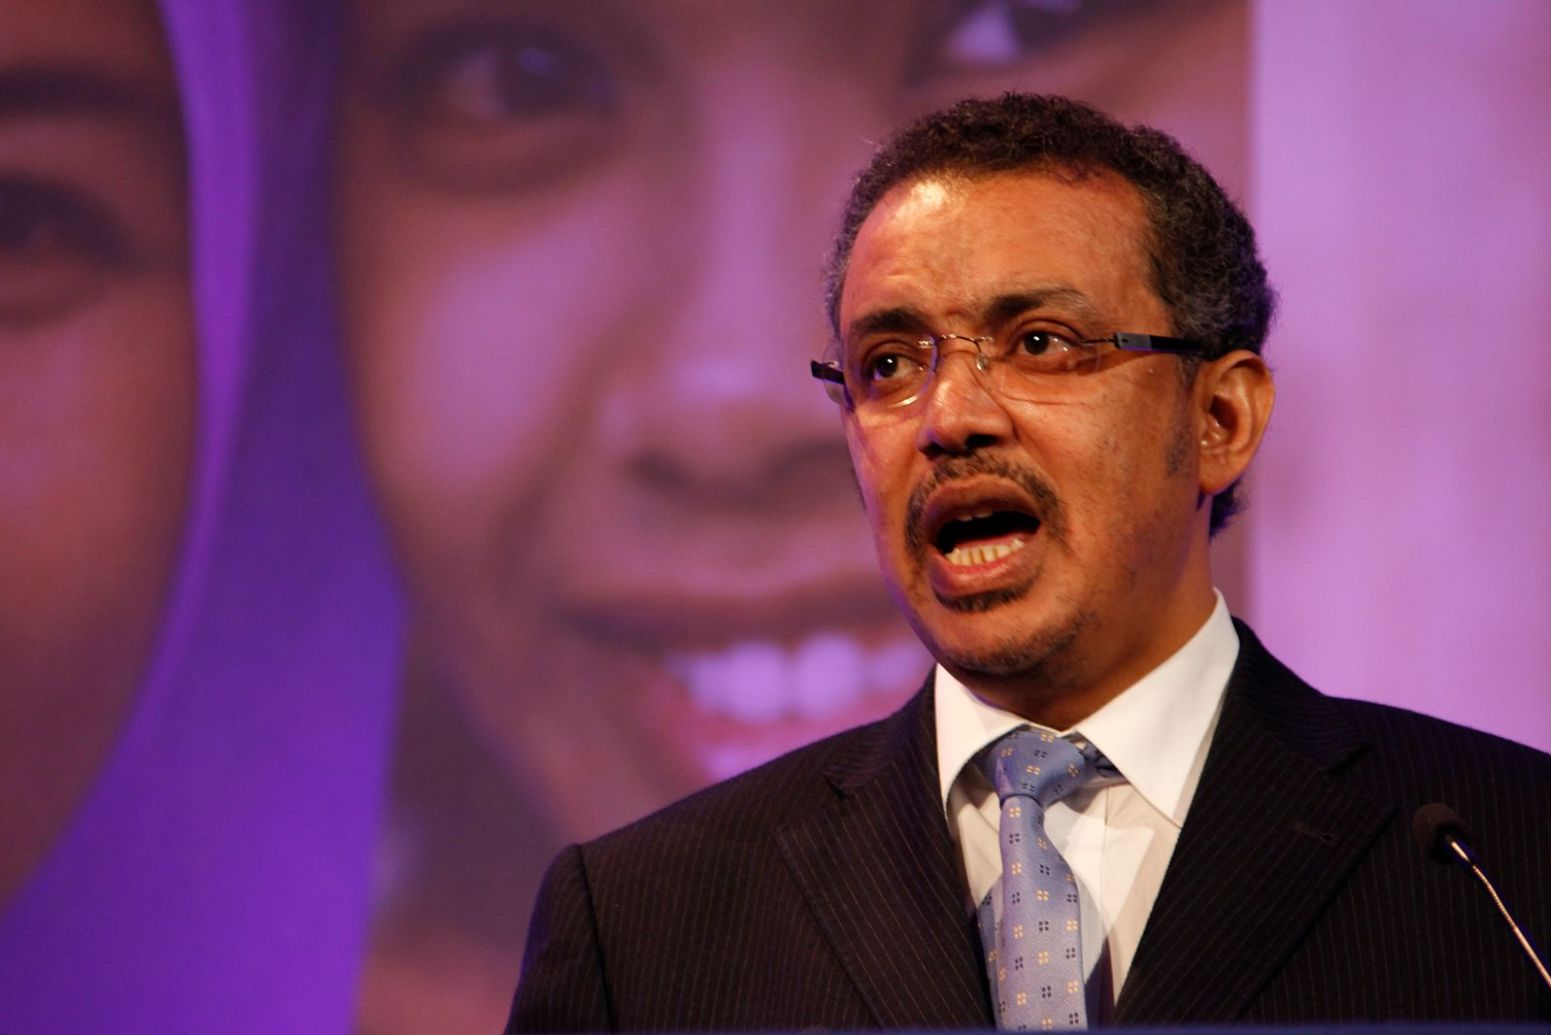 World Health Assembly: Tedros cautions countries against a return to the status quo